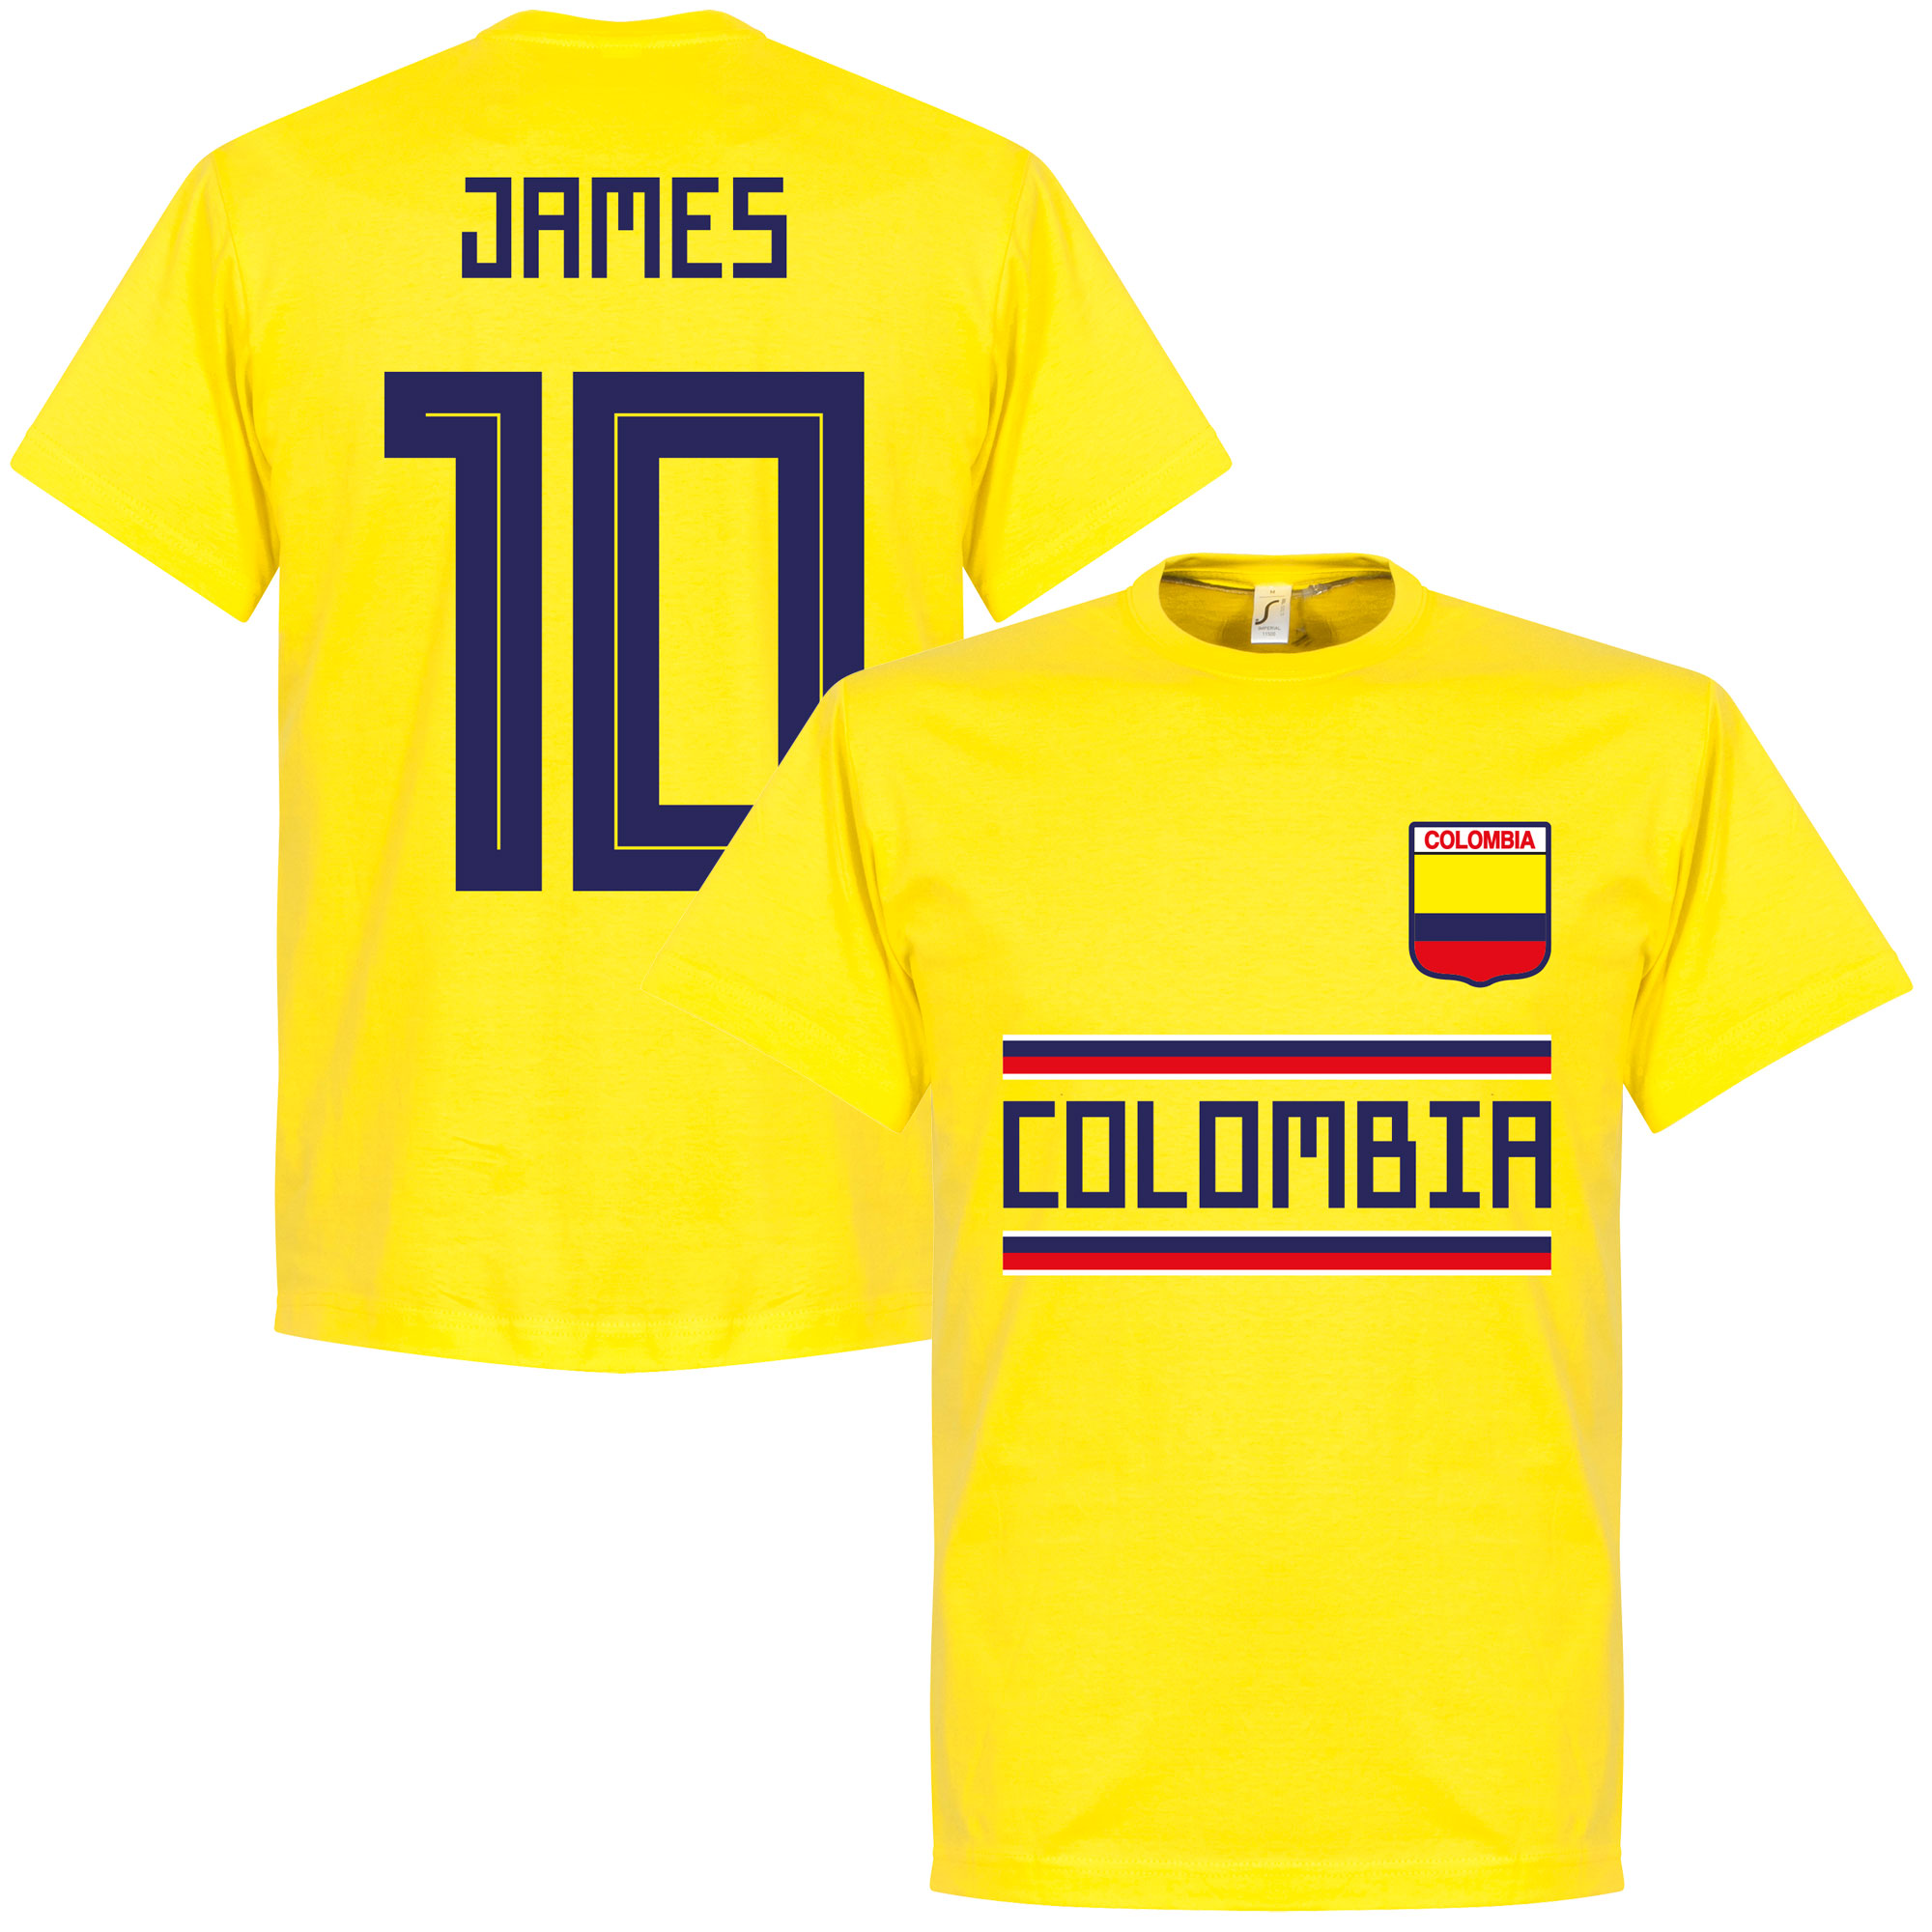 Colombia James 10 Team T-Shirt - Yellow - XXL